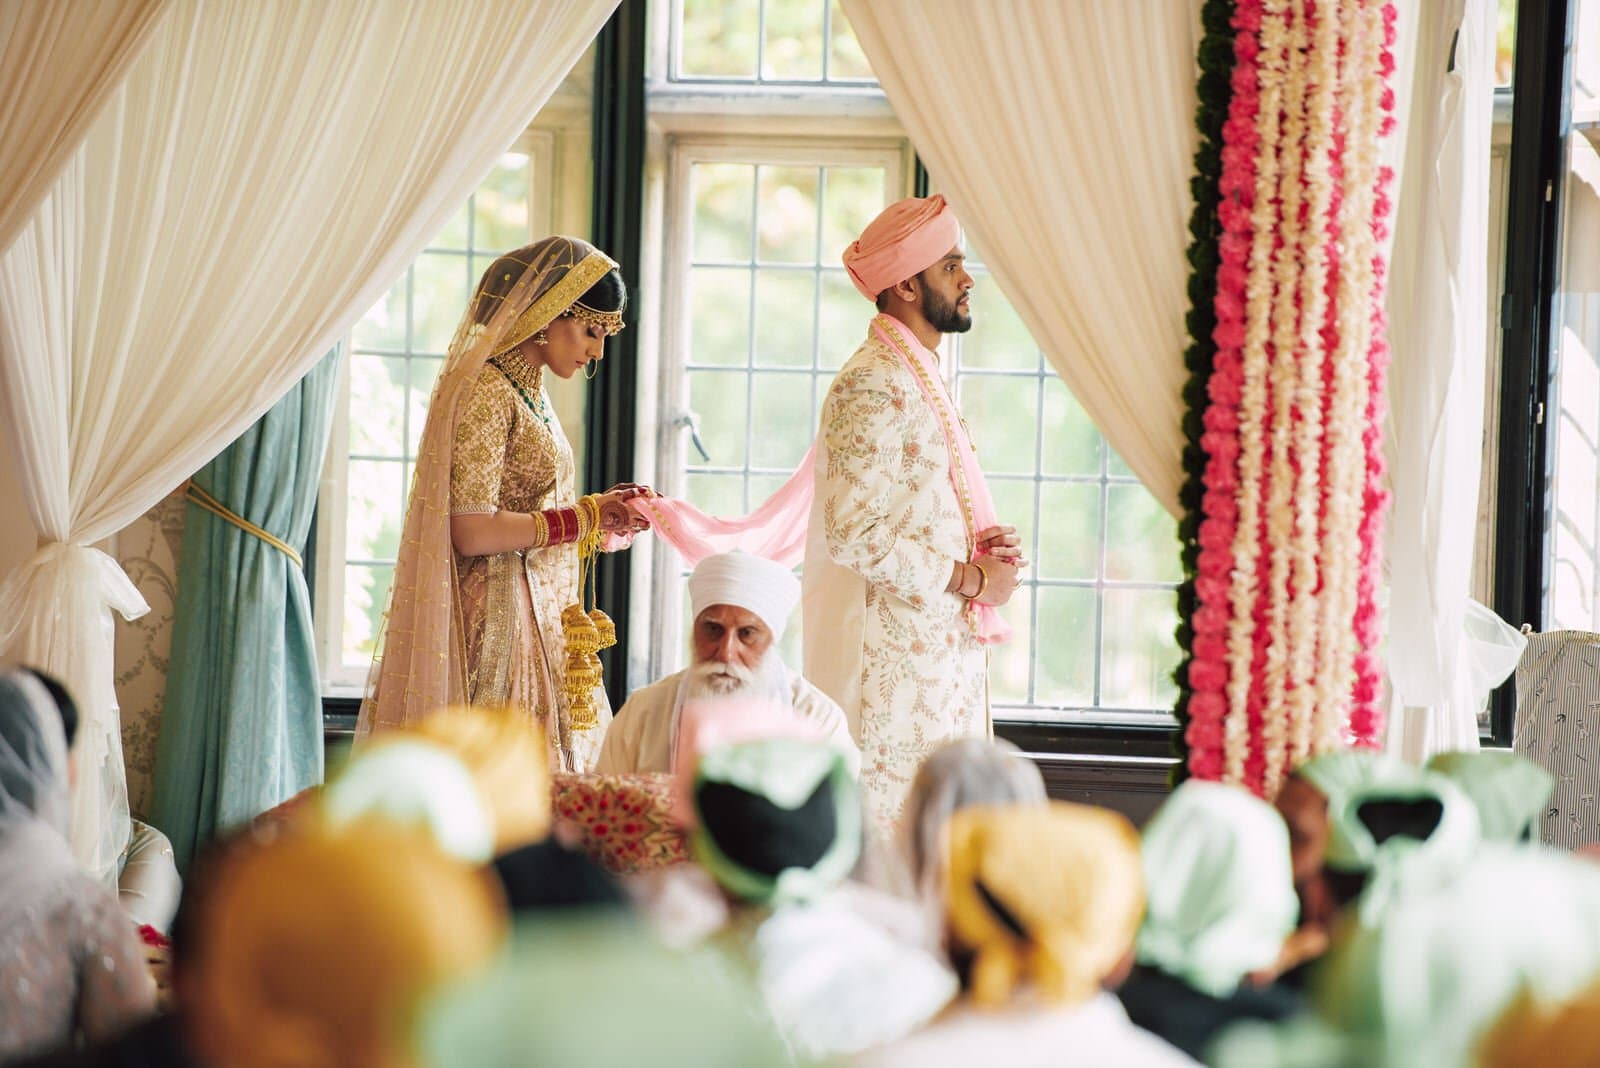 Sikh wedding photography at Dunchurch Park Hall